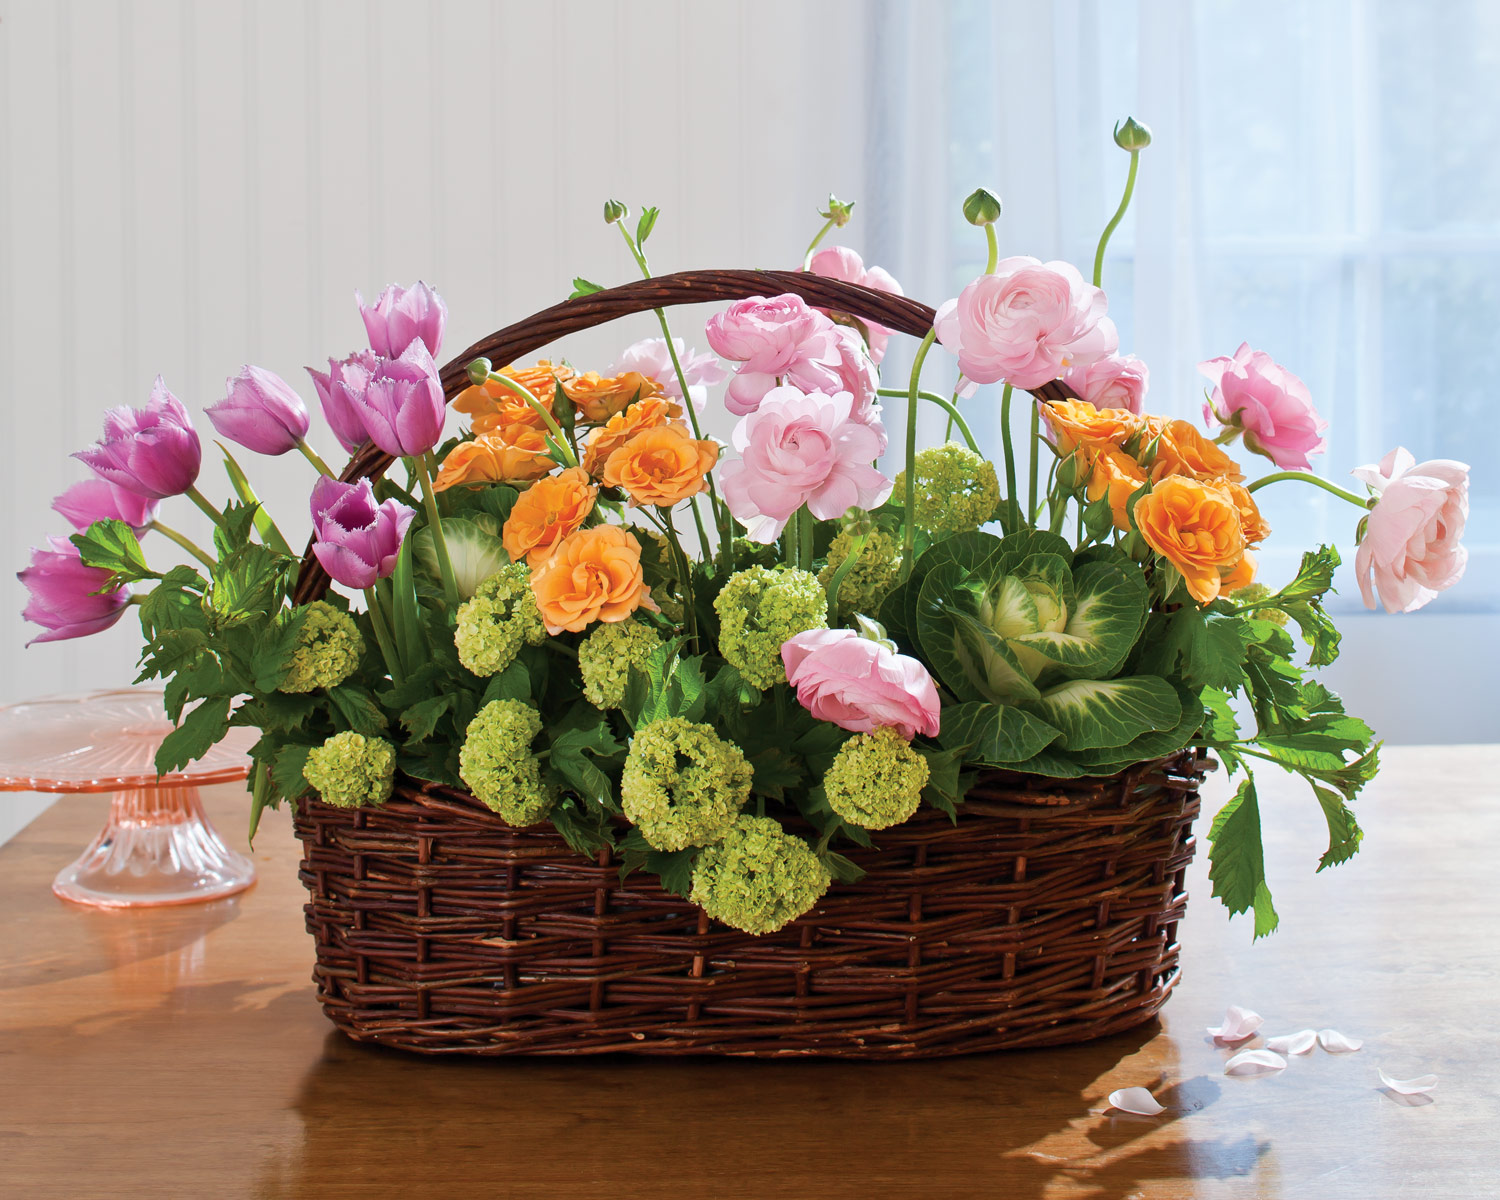 Flower Basket Arrangements Pictures : Easter floral arrangements